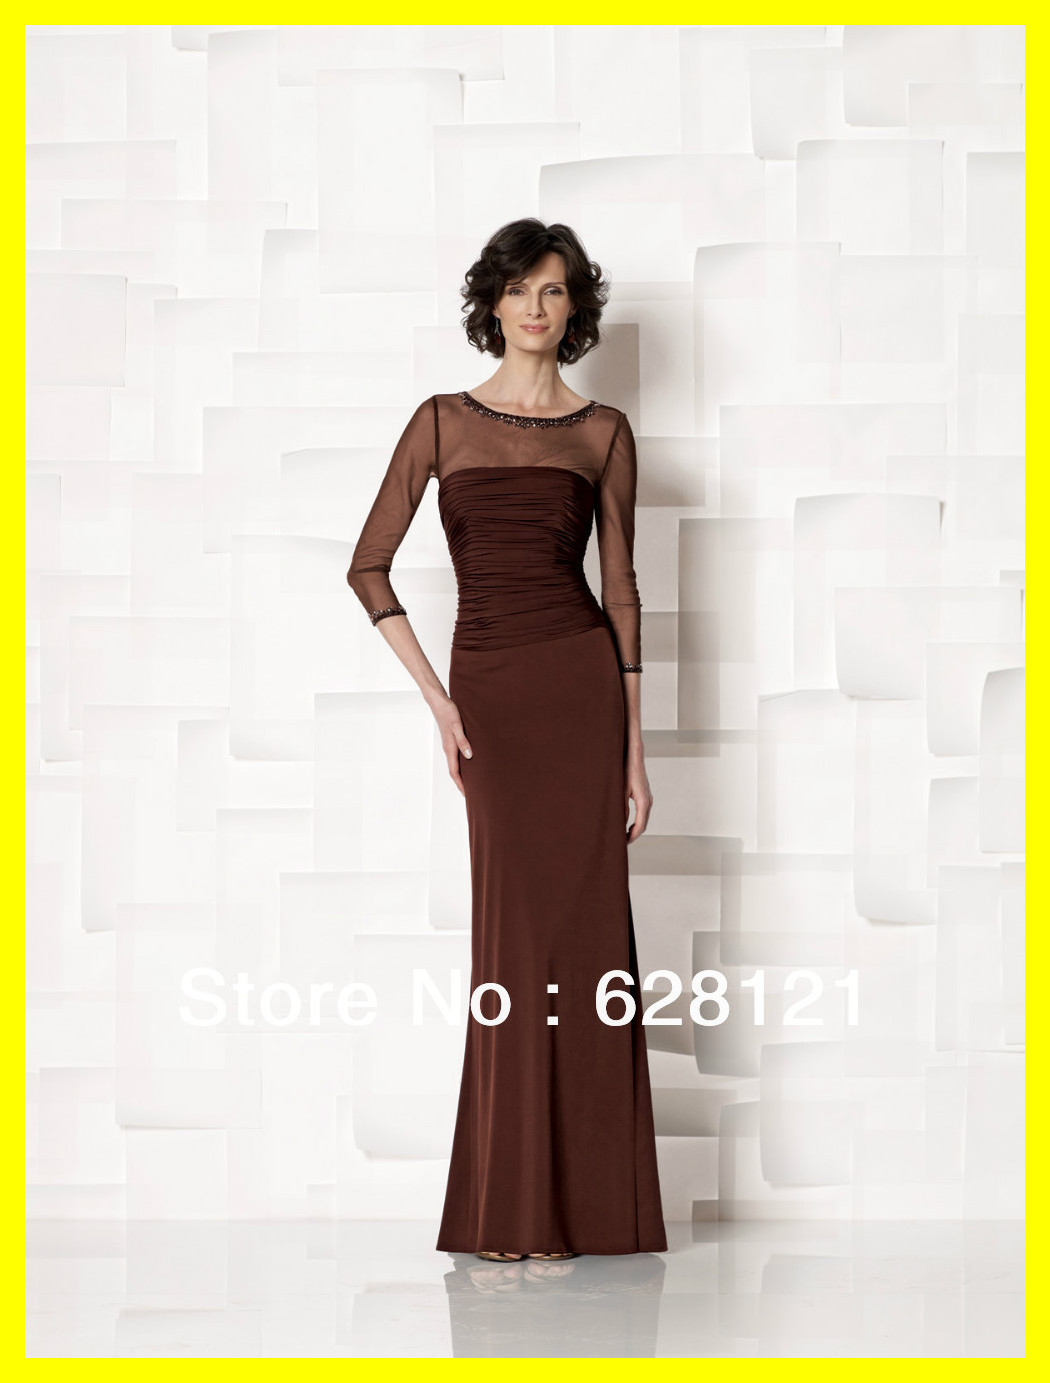 Dresses For Weddings Bridal Mother Of The Bride Chicago